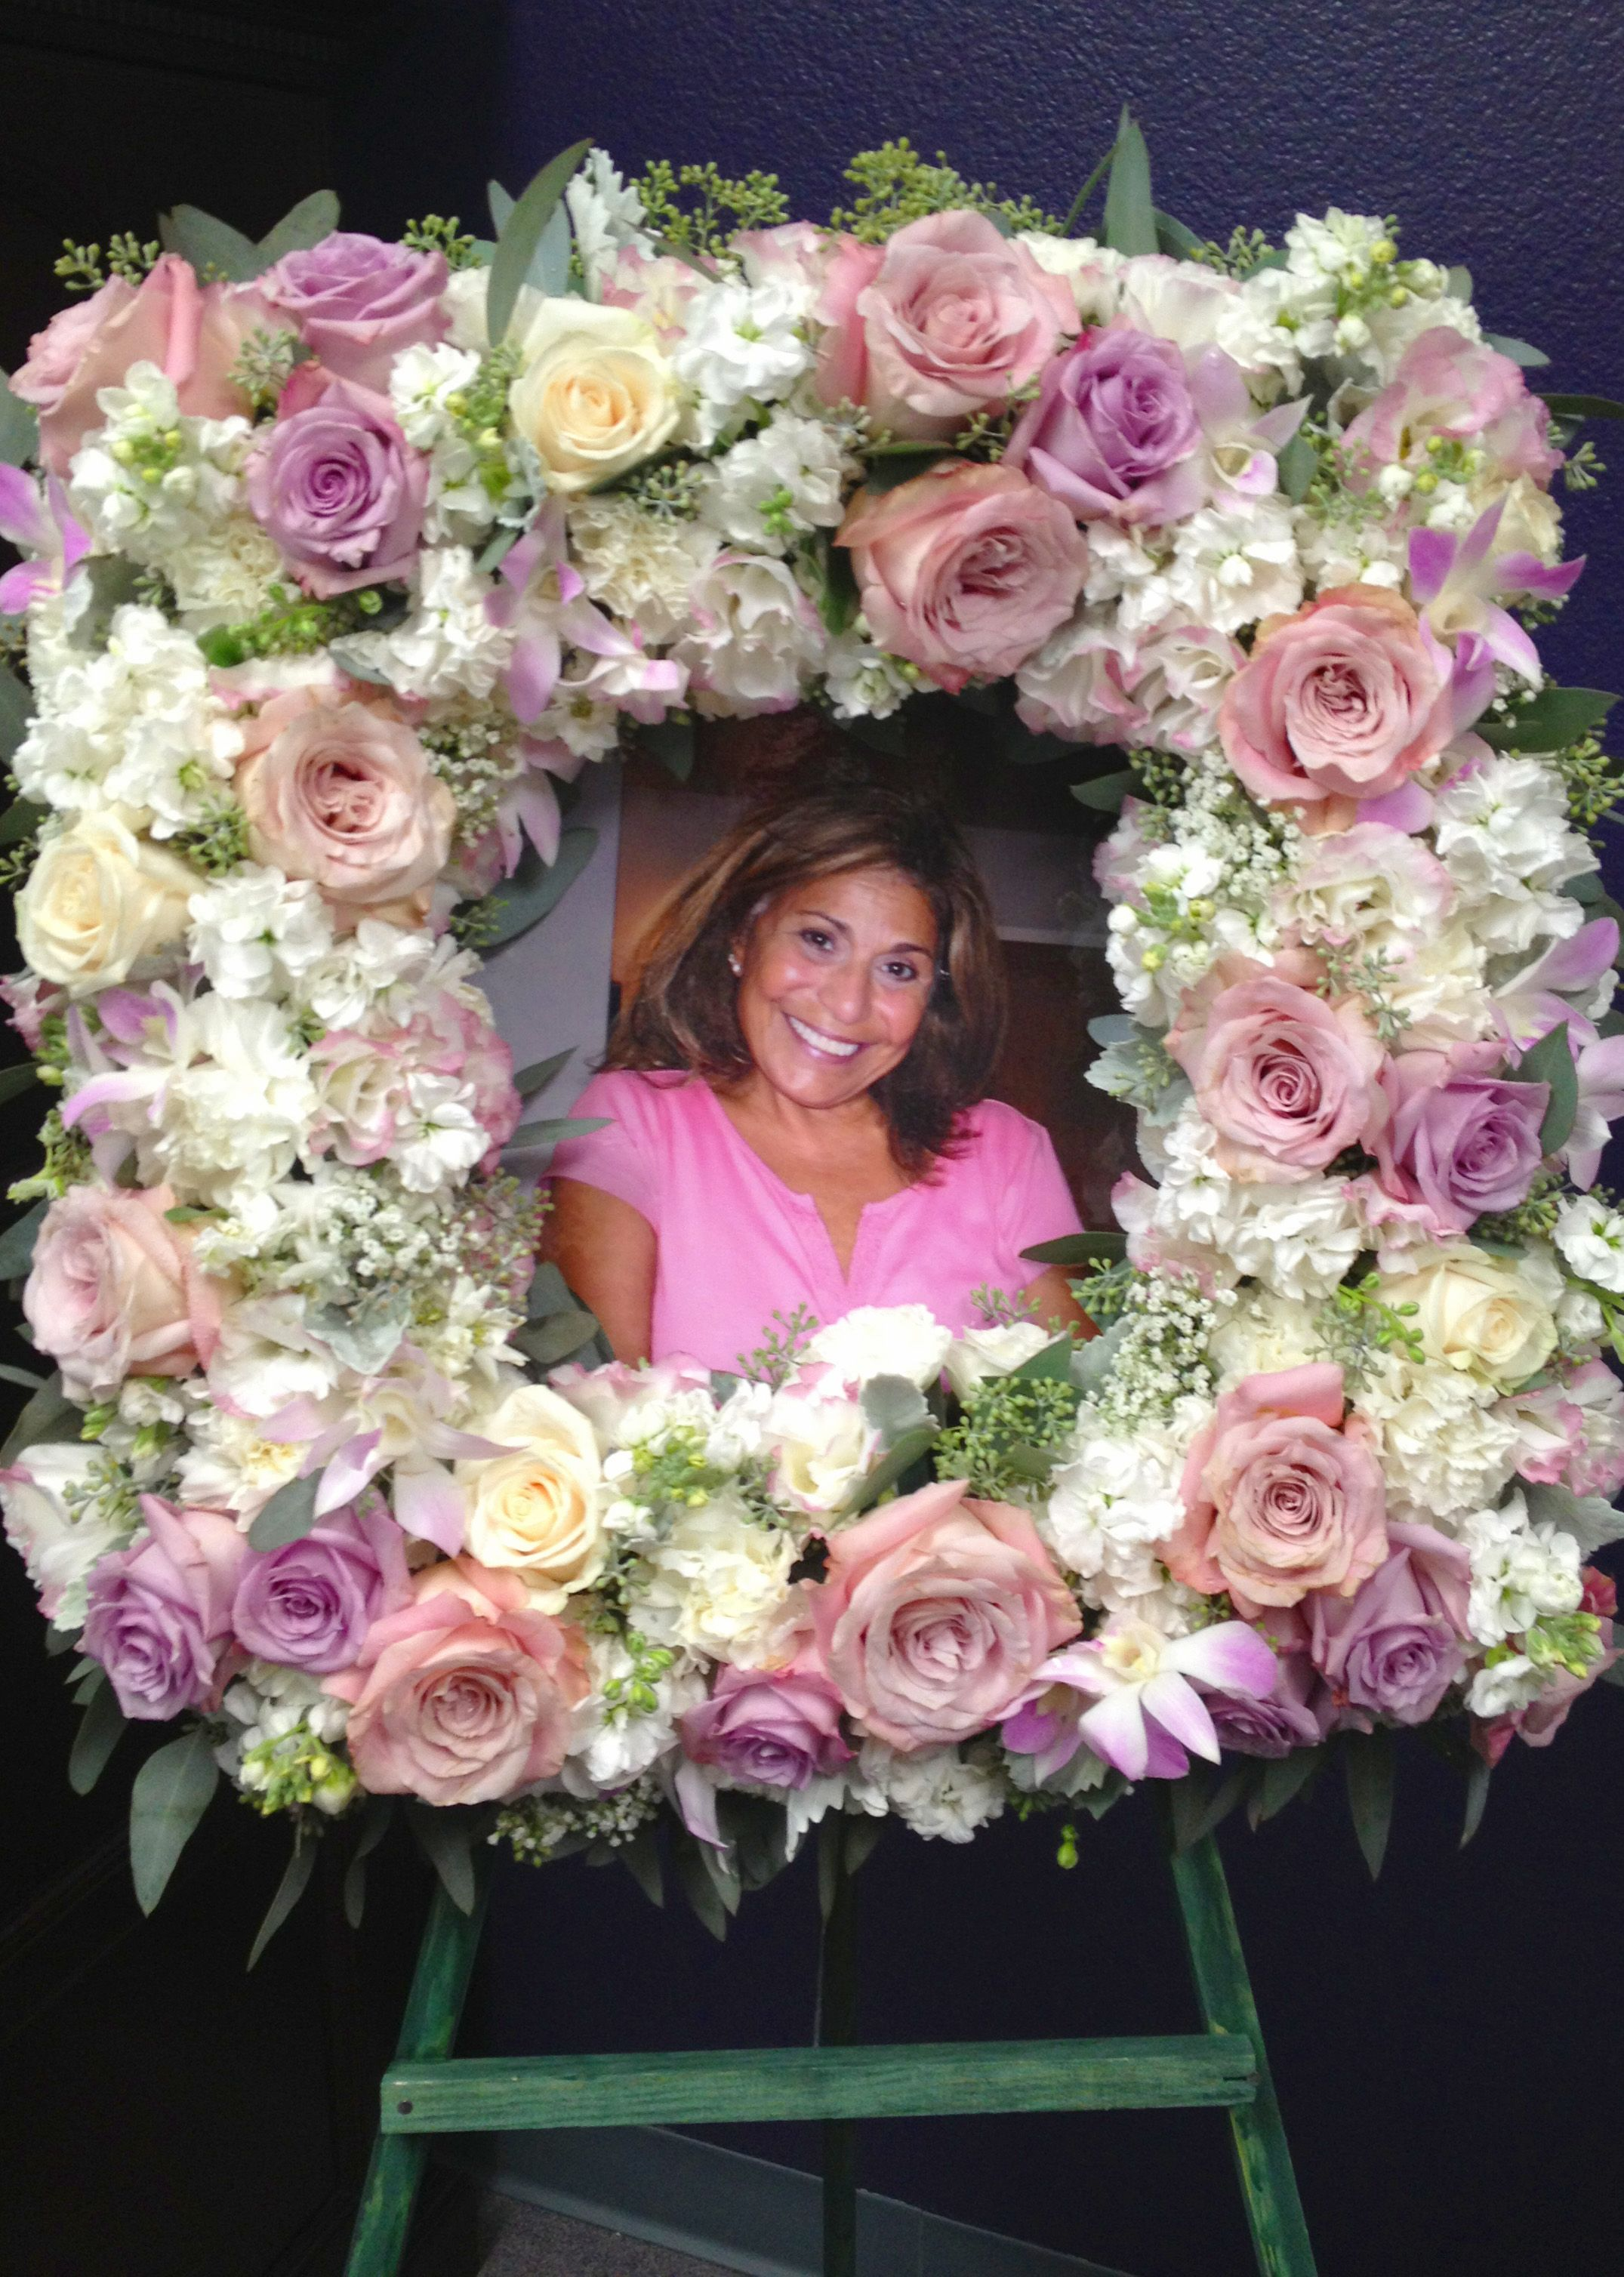 Pink and white frame wreath sympathy flowers church altar flower funeral flower arrangements dhlflorist Choice Image